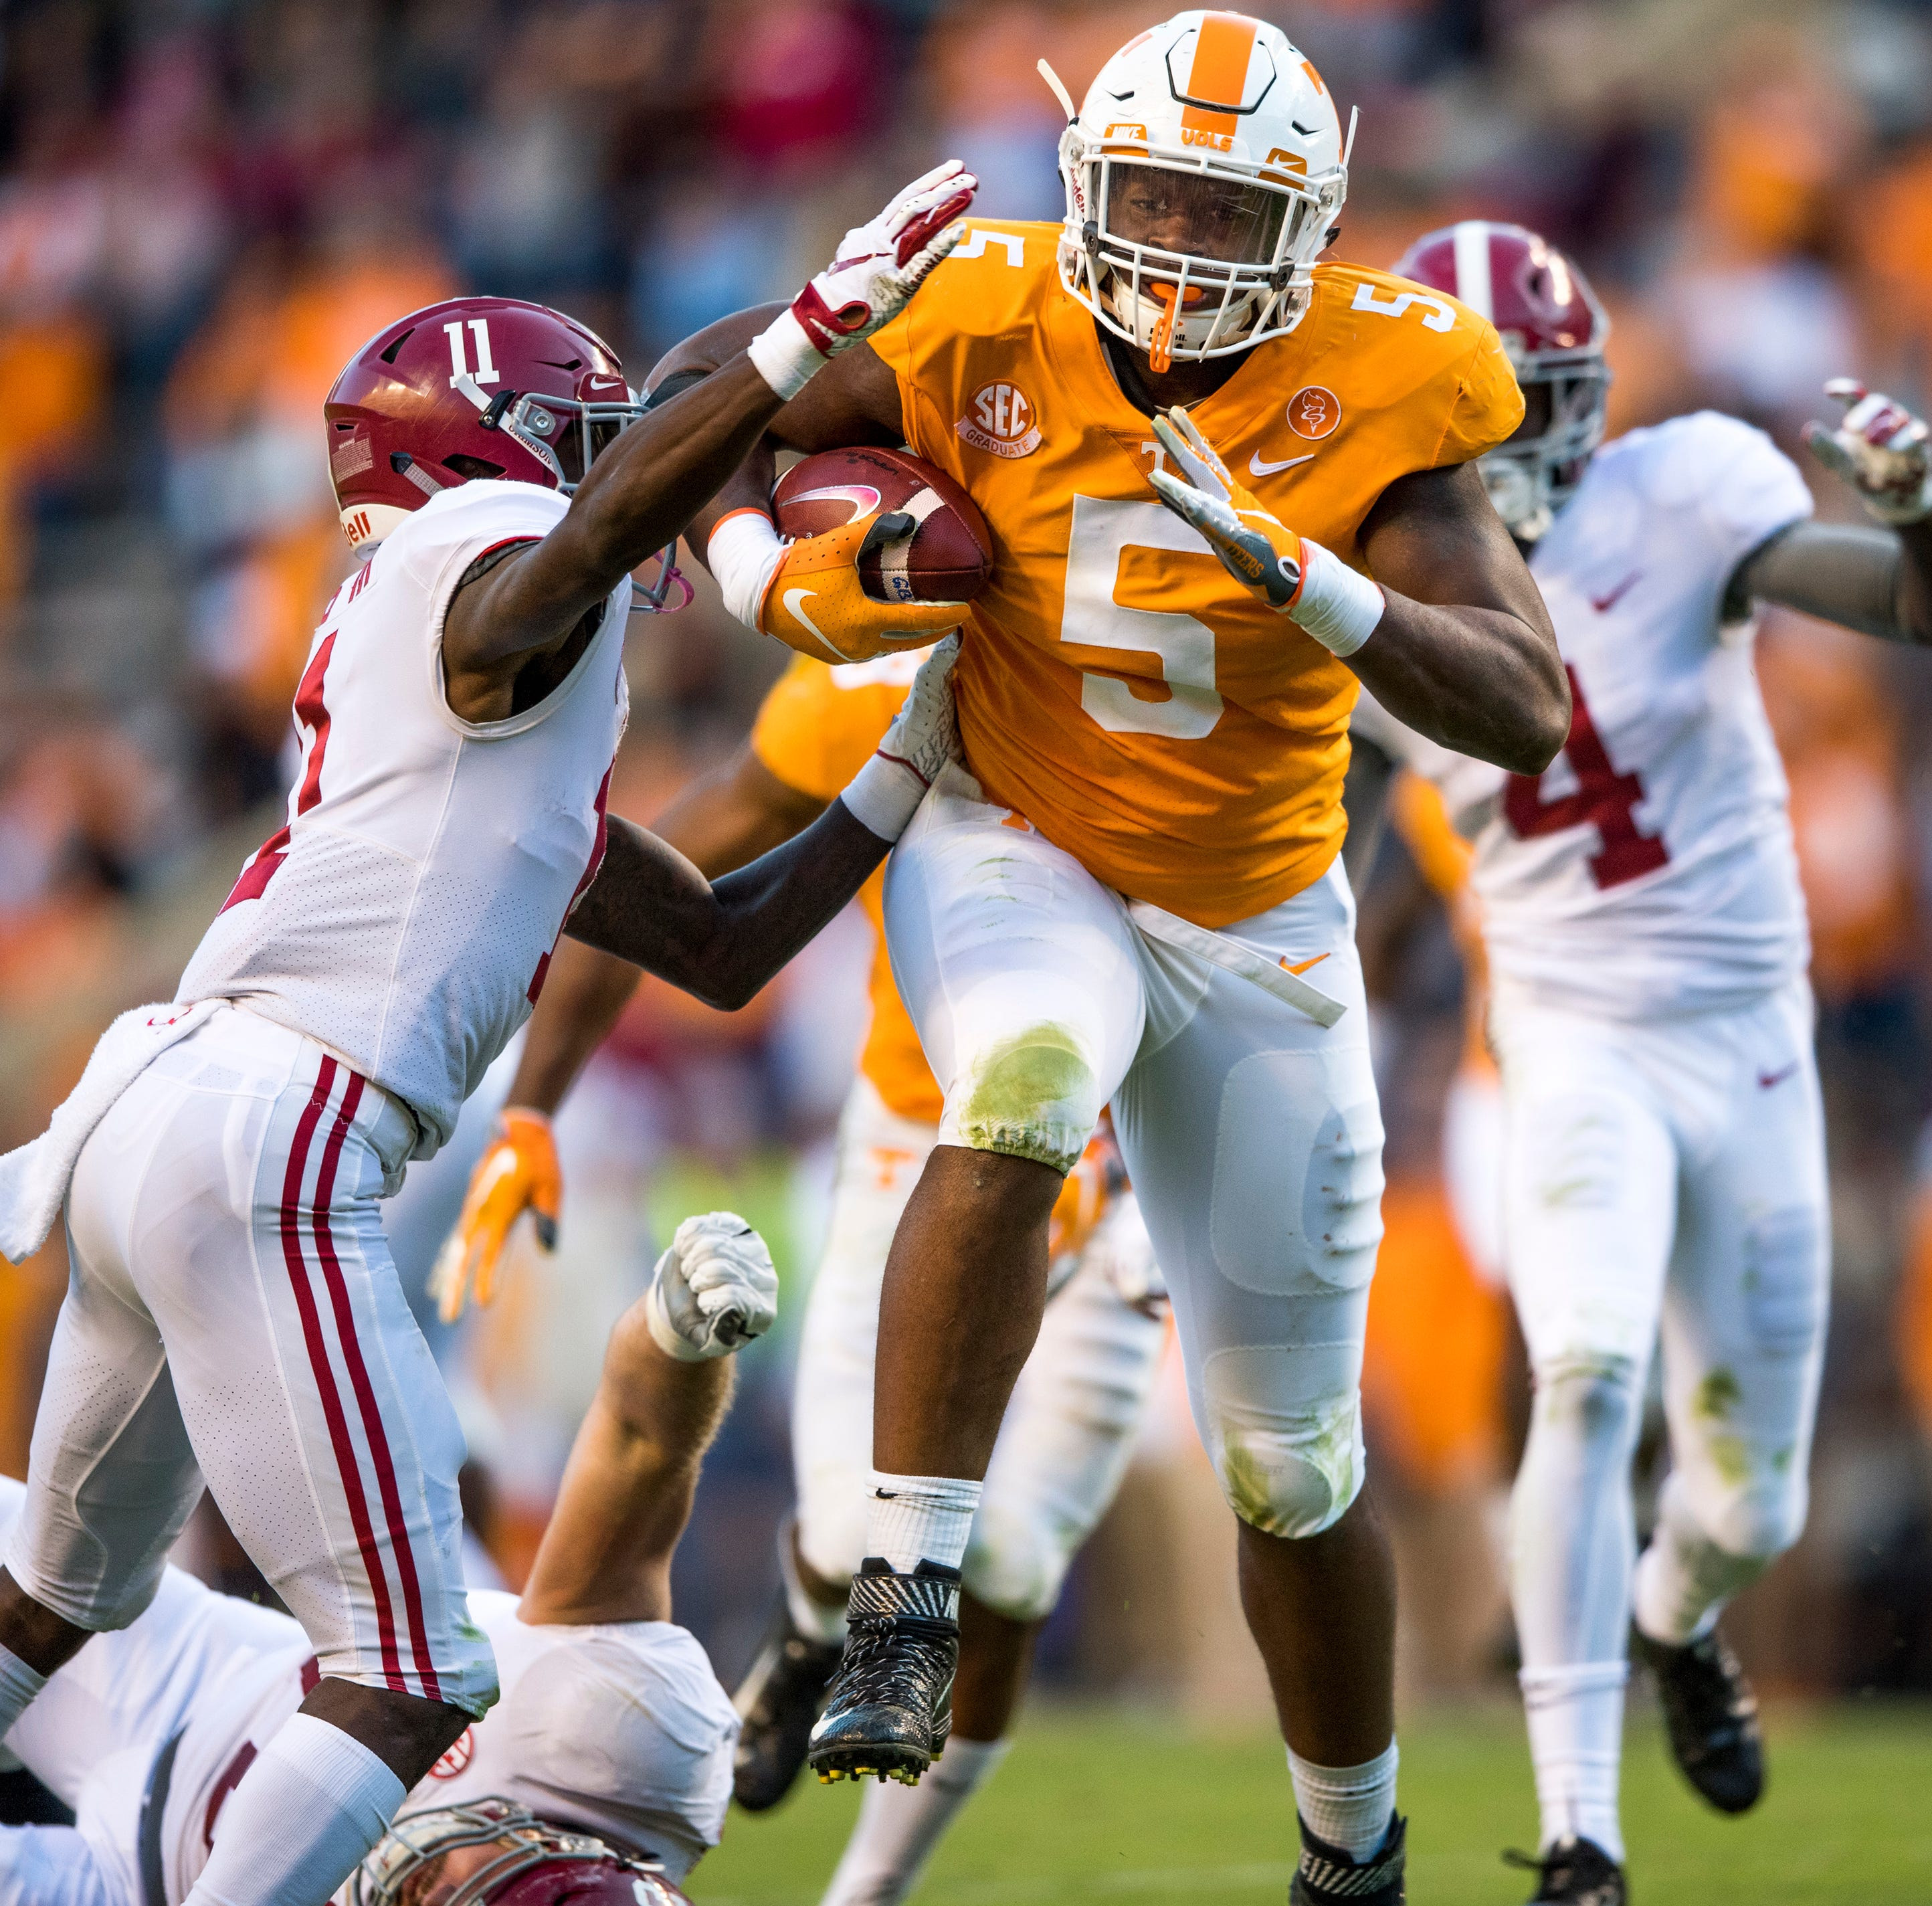 UT Vols' Kyle Phillips among Piesman Trophy finalists